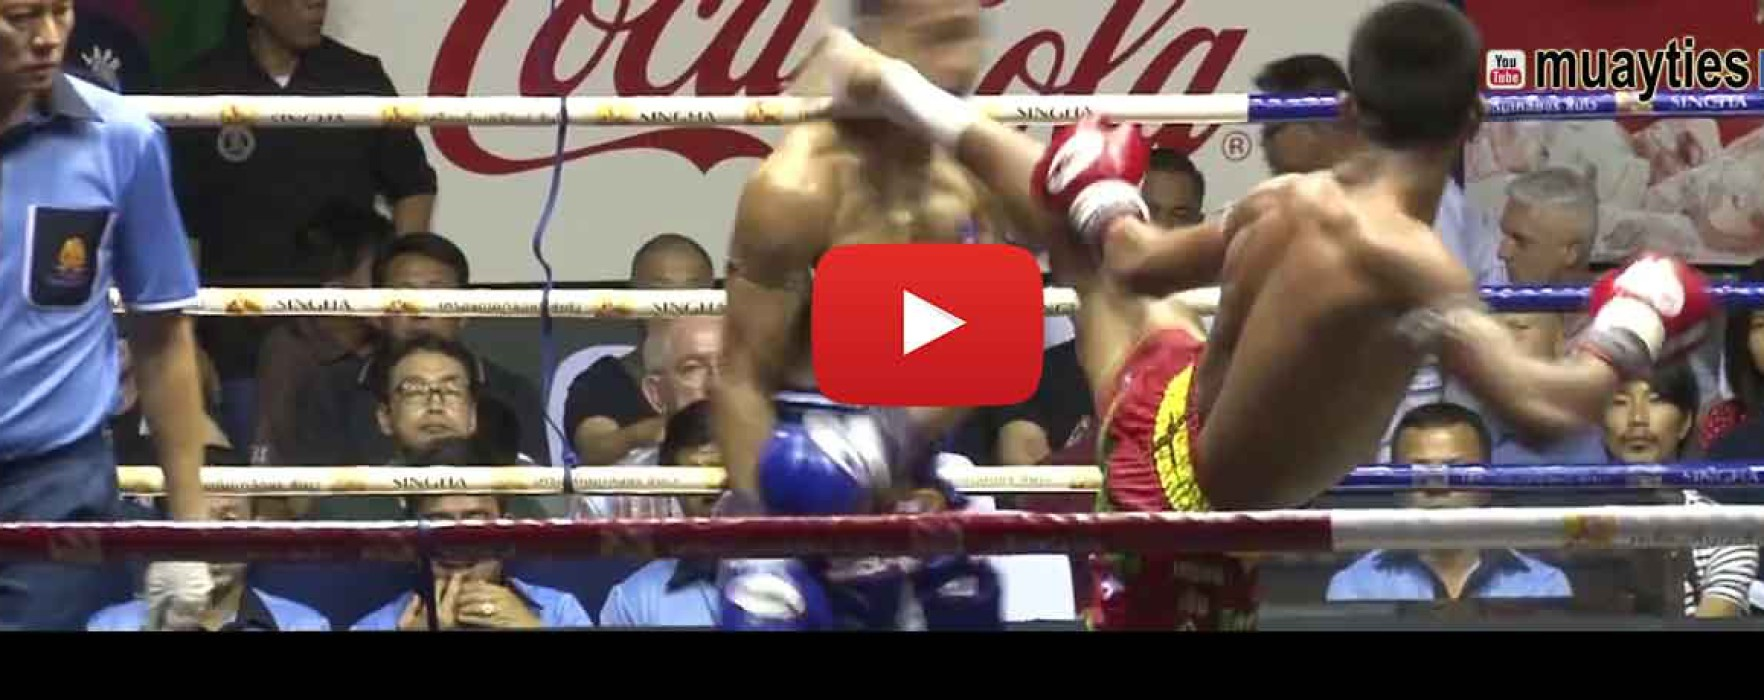 pdated! Video: Panpayak KO vs Sam-A & Kengklar KO vs Wanchalong – Rajadamnern Stadium – 29th April 2015